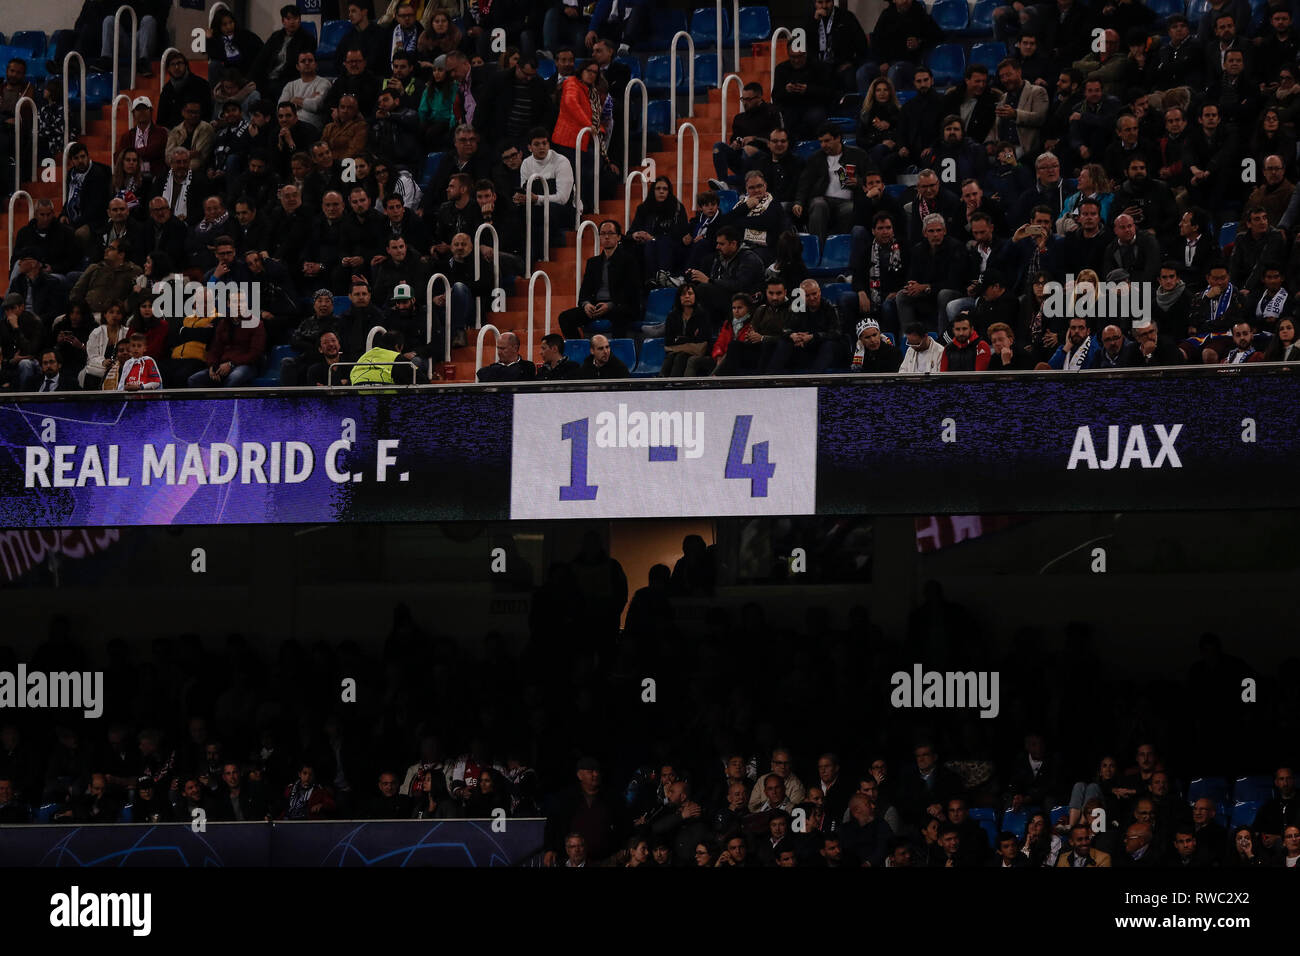 Santiago Bernabeu, Madrid, Spain. 5th Mar, 2019. UEFA Champions League football, round of 16, second leg, Real Madrid versus Ajax; The scoreboard shows the shock result Credit: Action Plus Sports/Alamy Live News - Stock Image